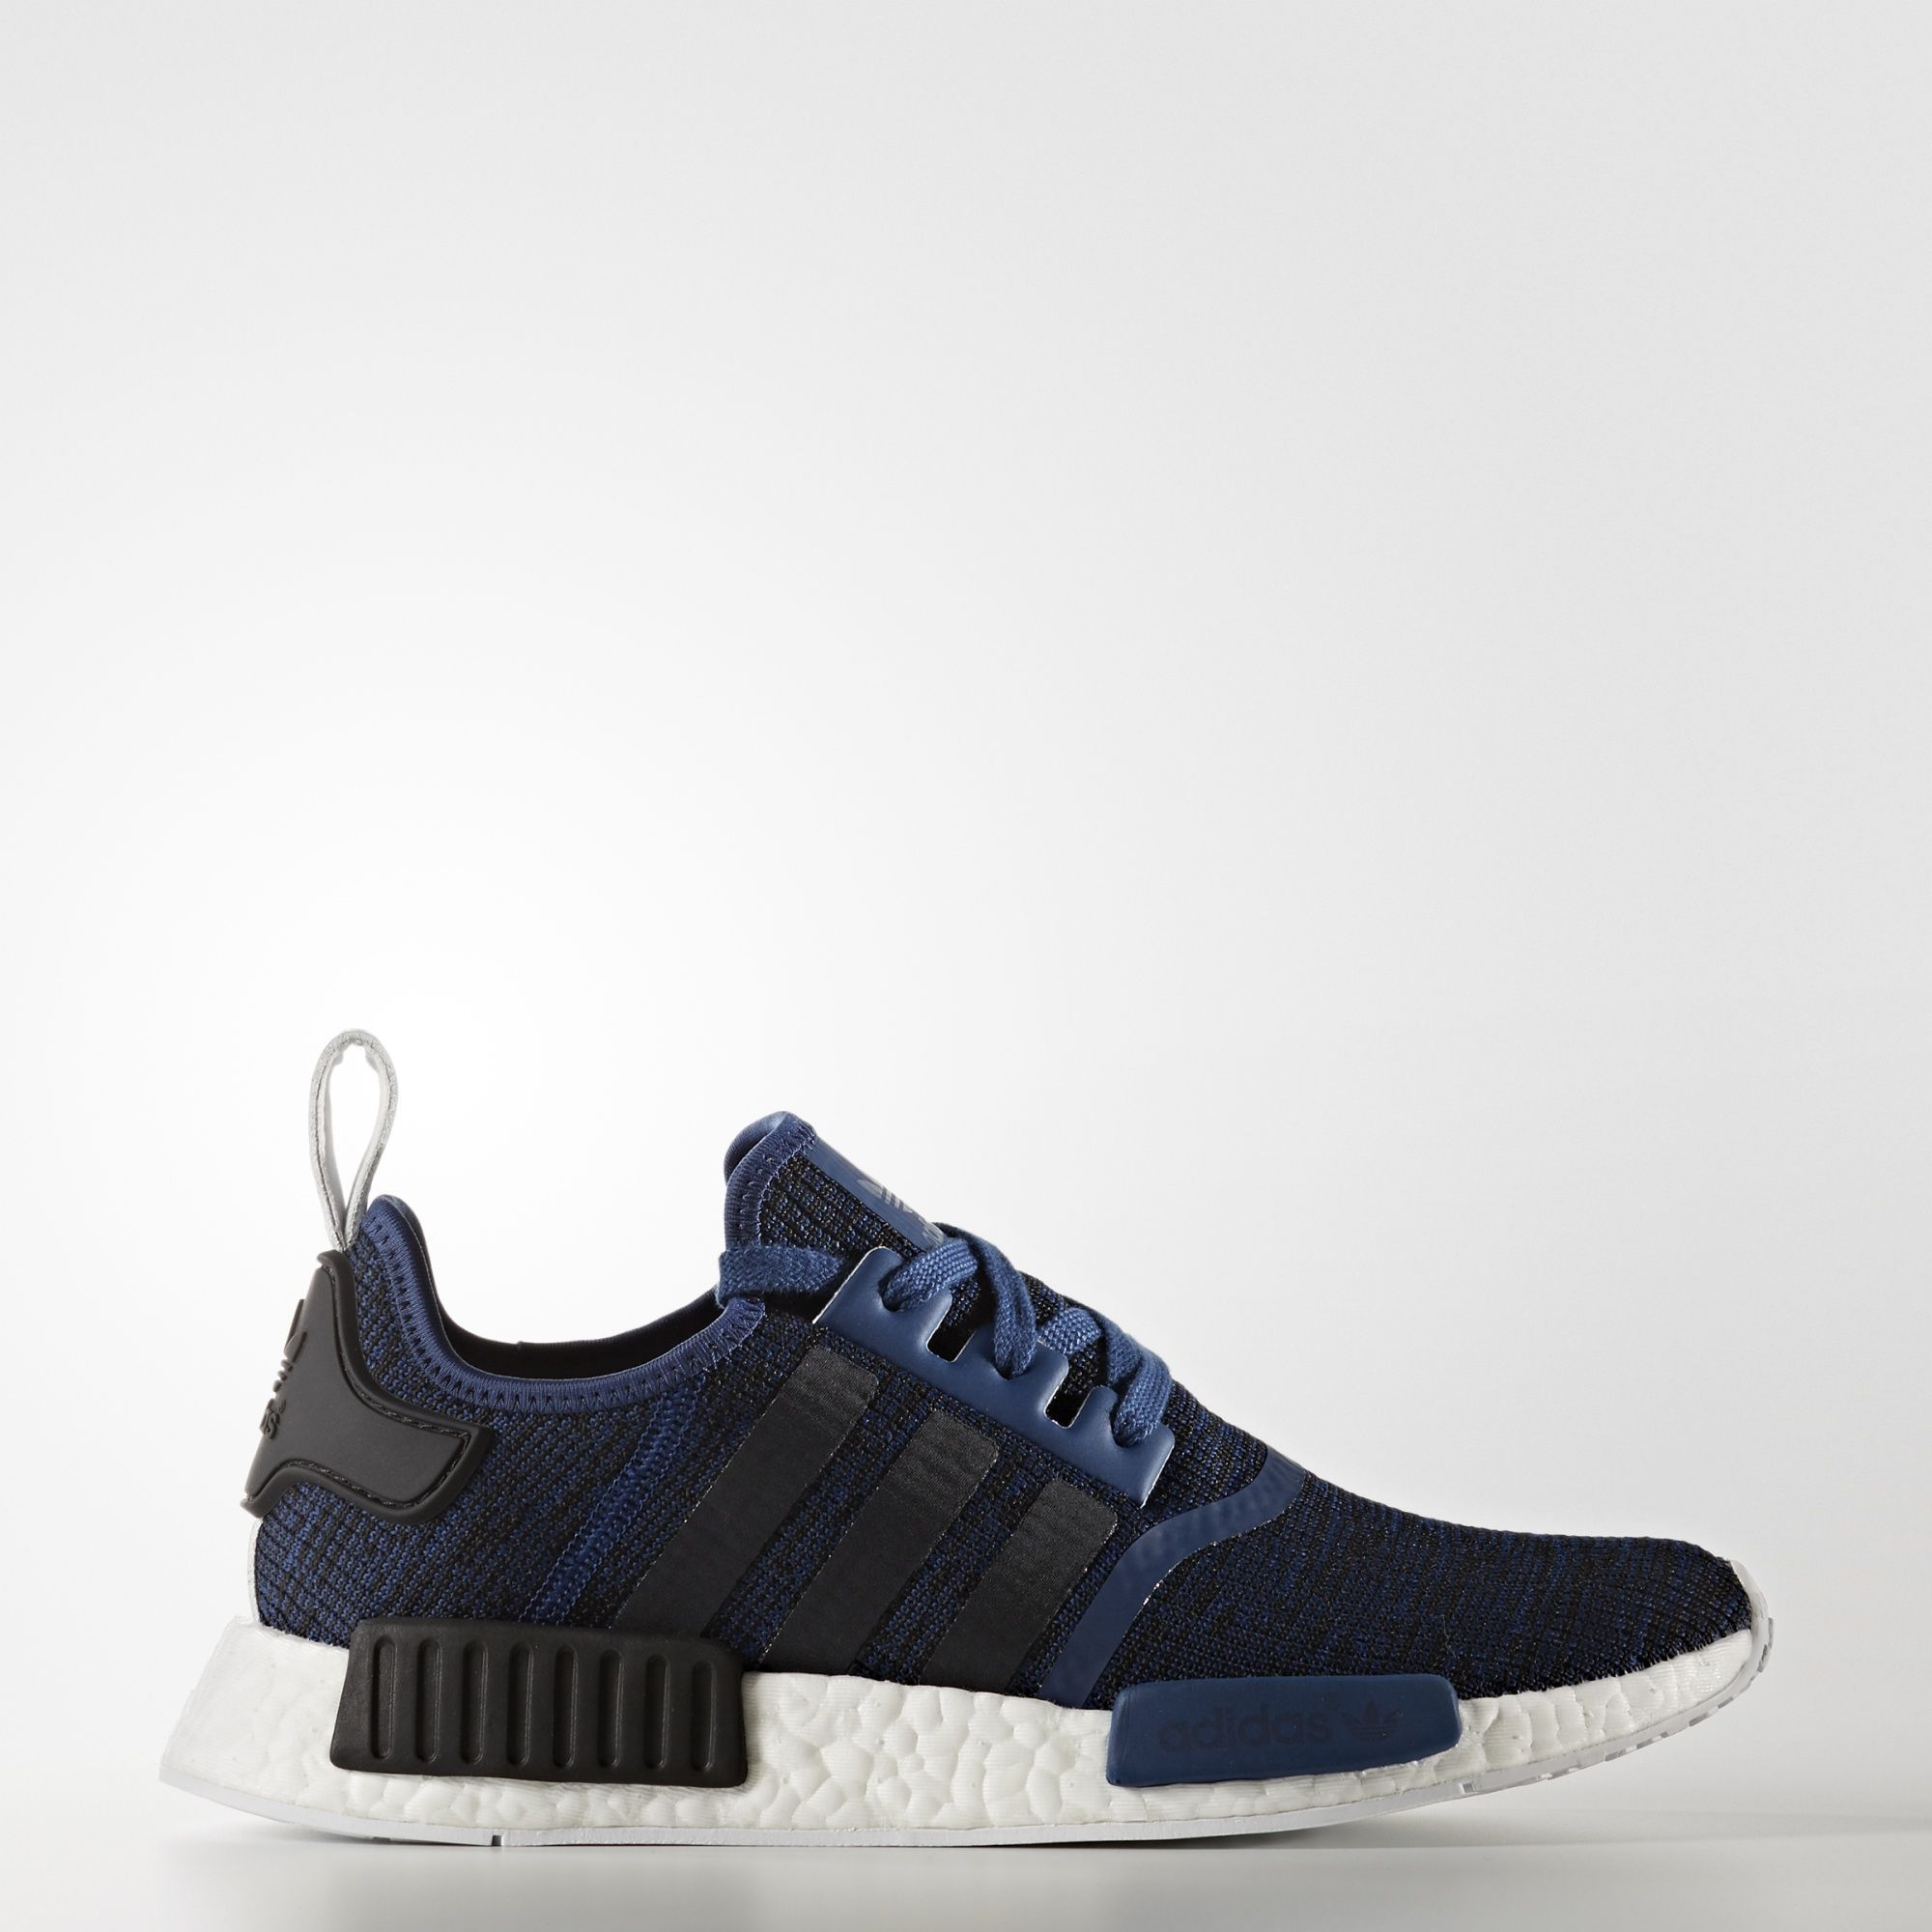 08b1bbc250d29 adidas - NMD R1 Shoes Mystery Blue Core Black Collegiate Navy BY2775 ...